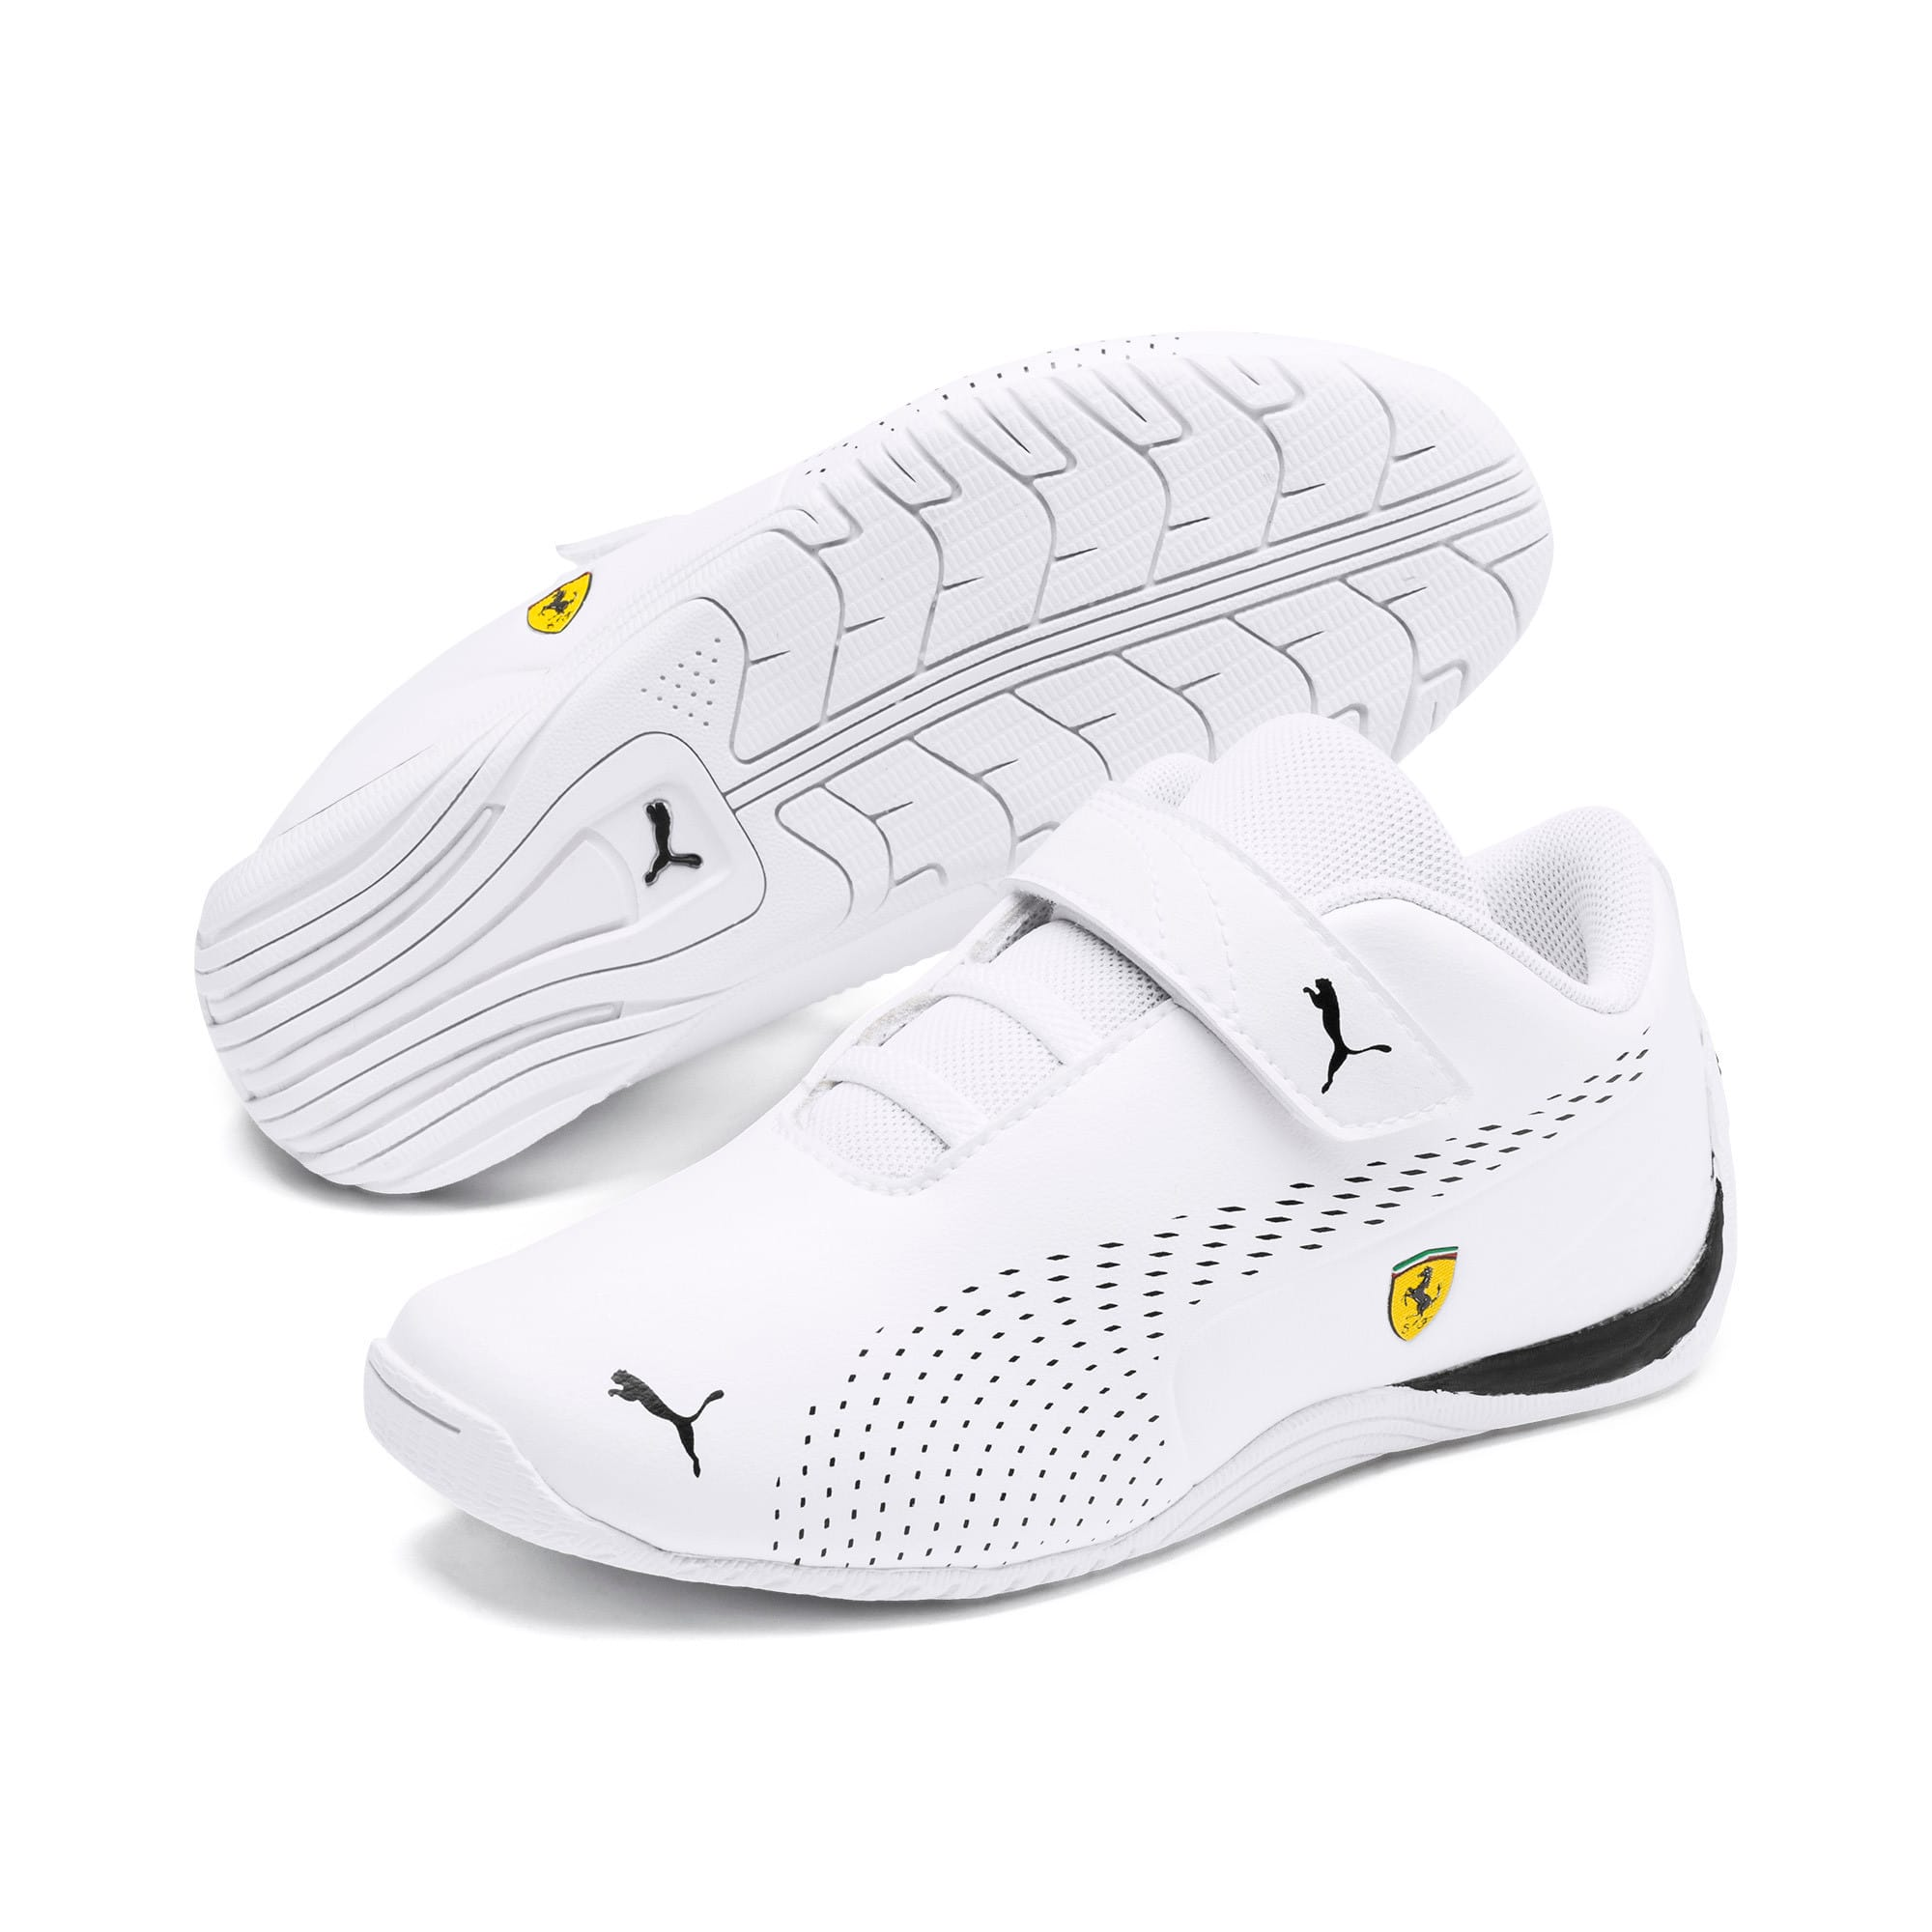 Thumbnail 2 of Ferrari Drift Cat 5 Ultra II V Kids Sneaker, Puma White-Puma Black, medium